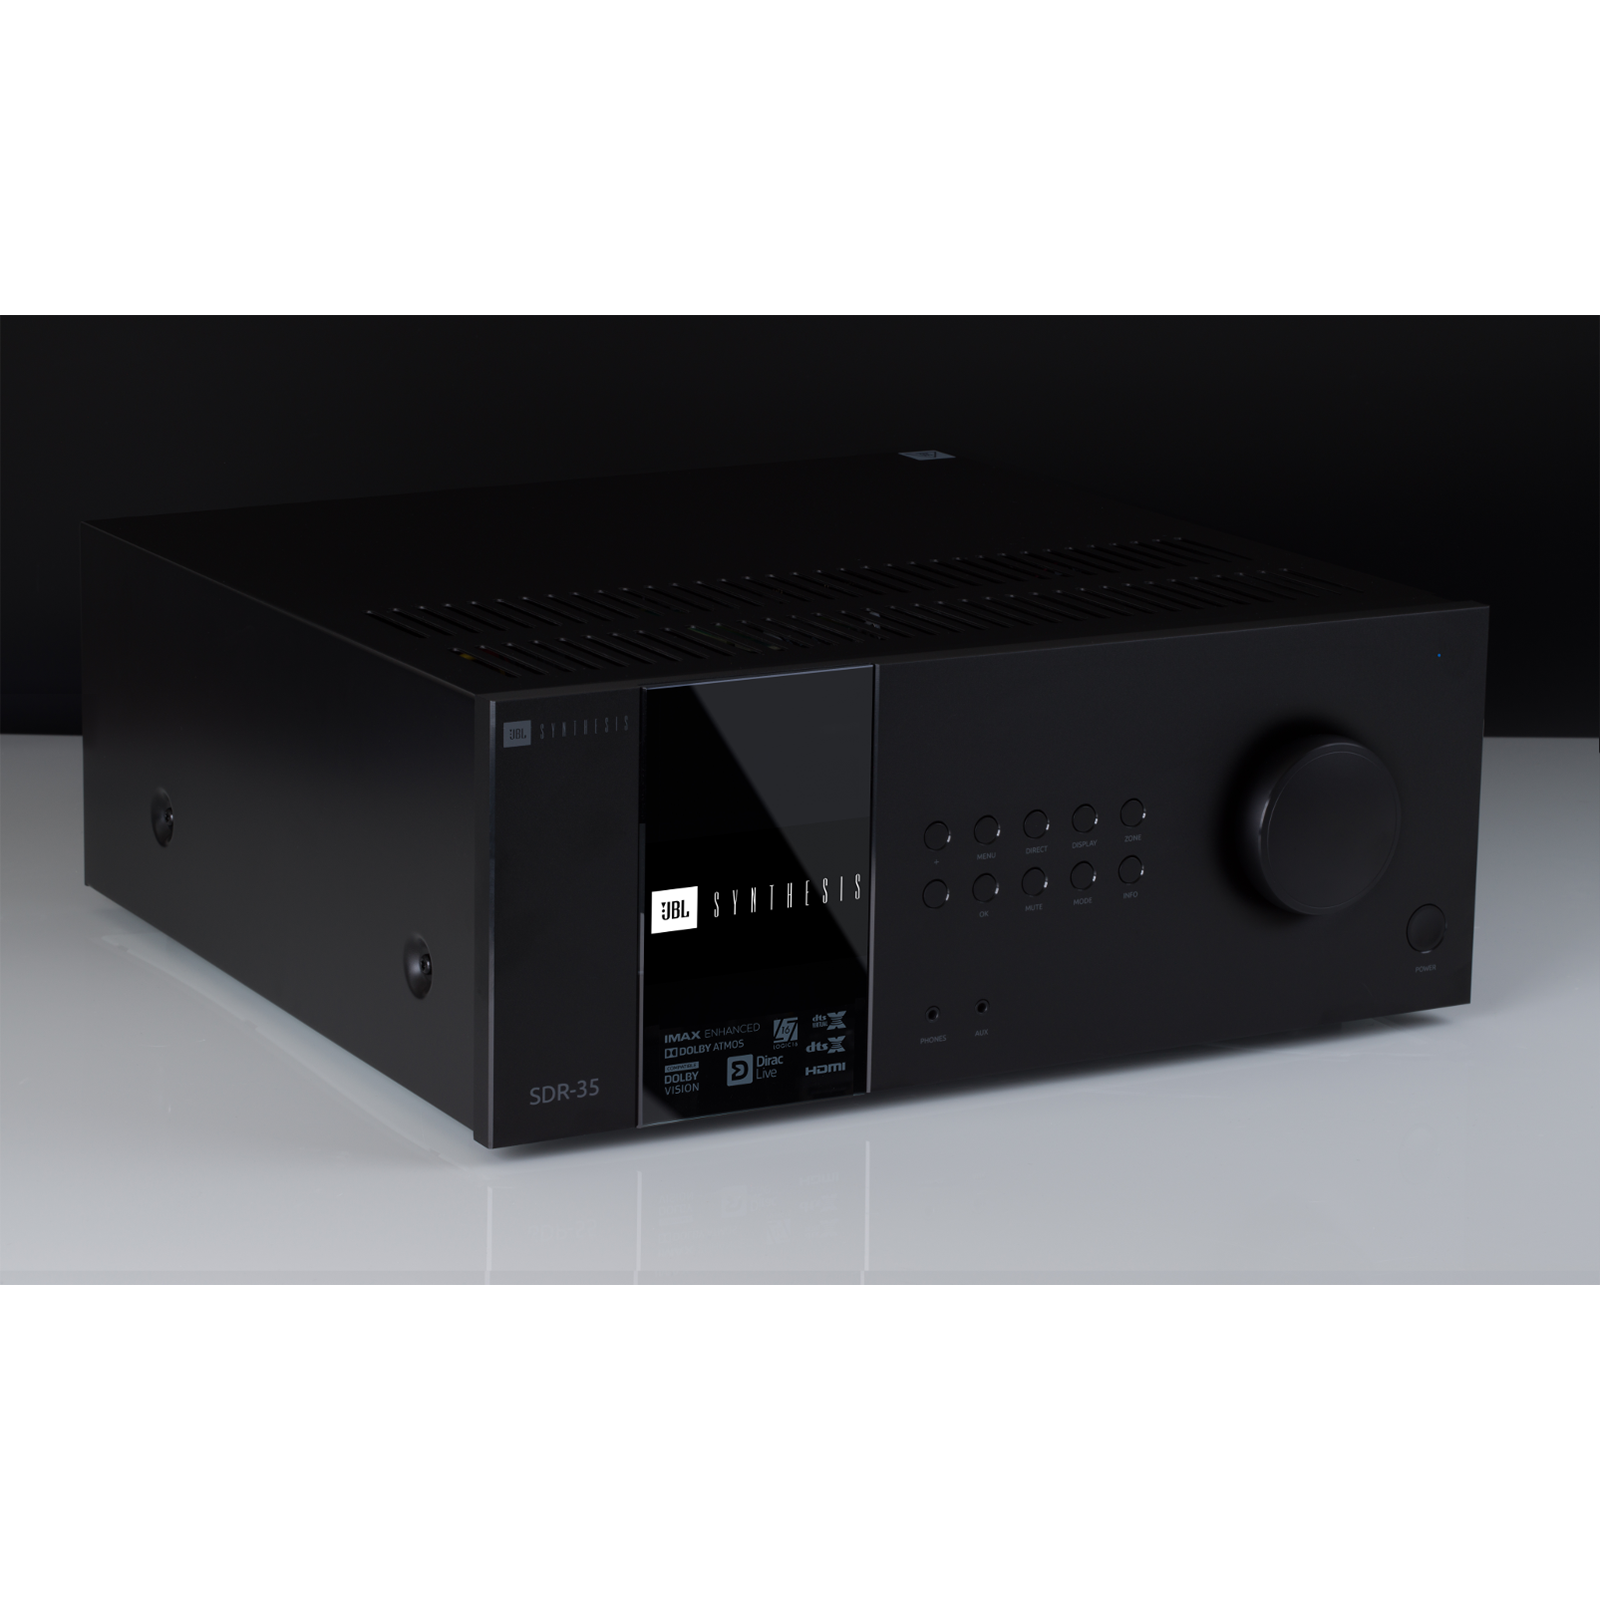 SDR-35 - Black - Class G Immersive Surround Sound AVR w/16 channels of processing - Front